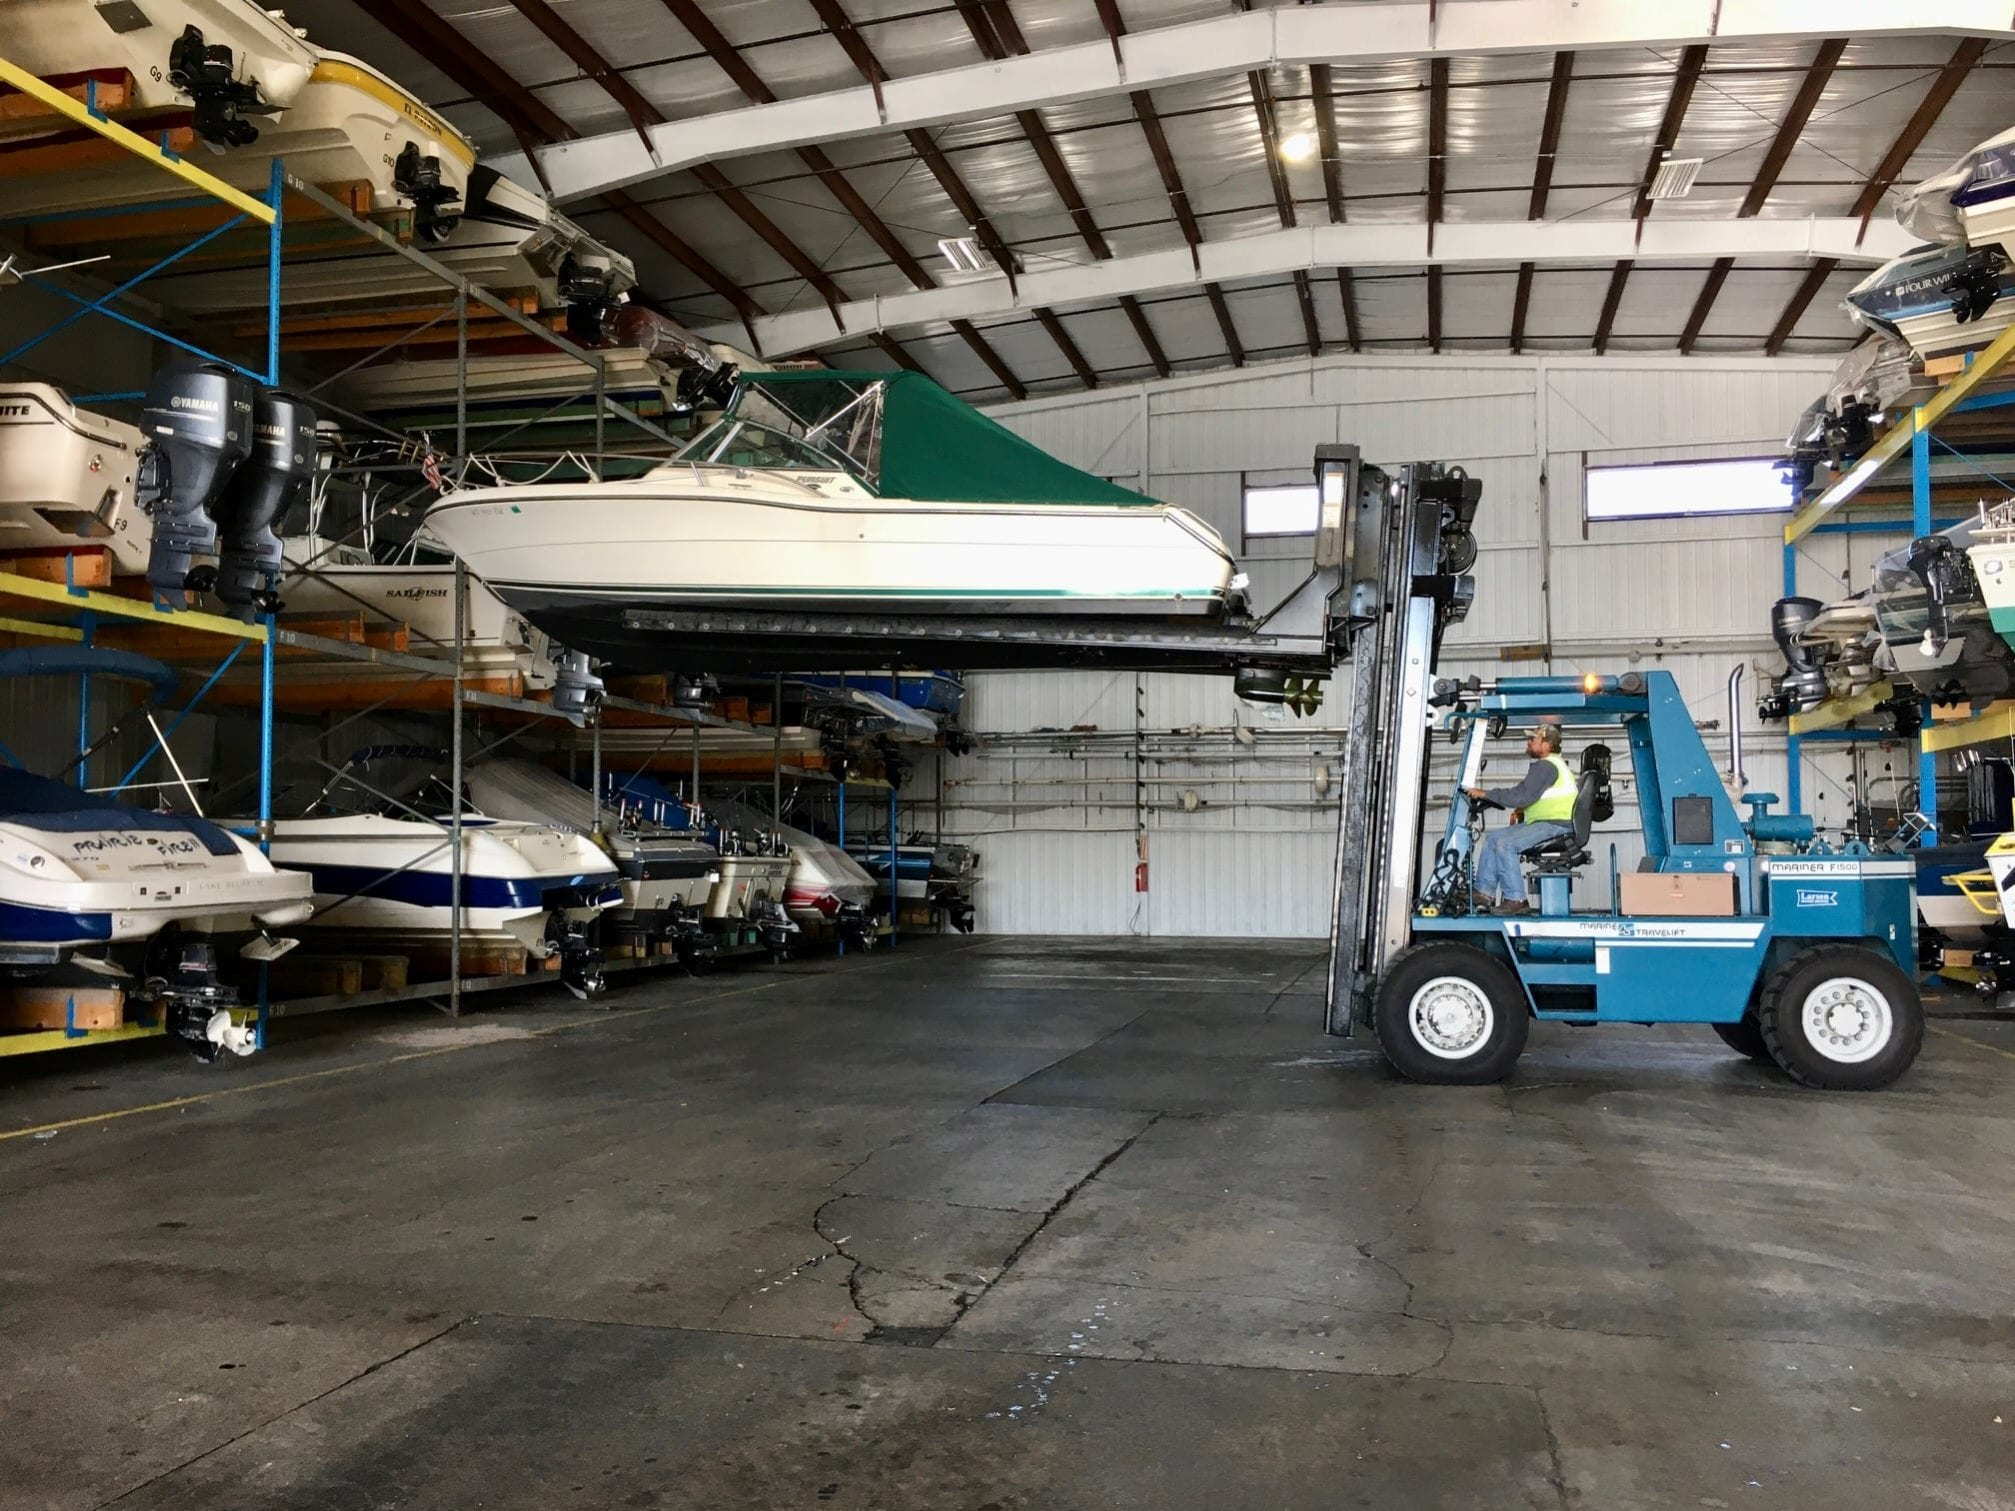 Storing Your Powerboat for The Winter